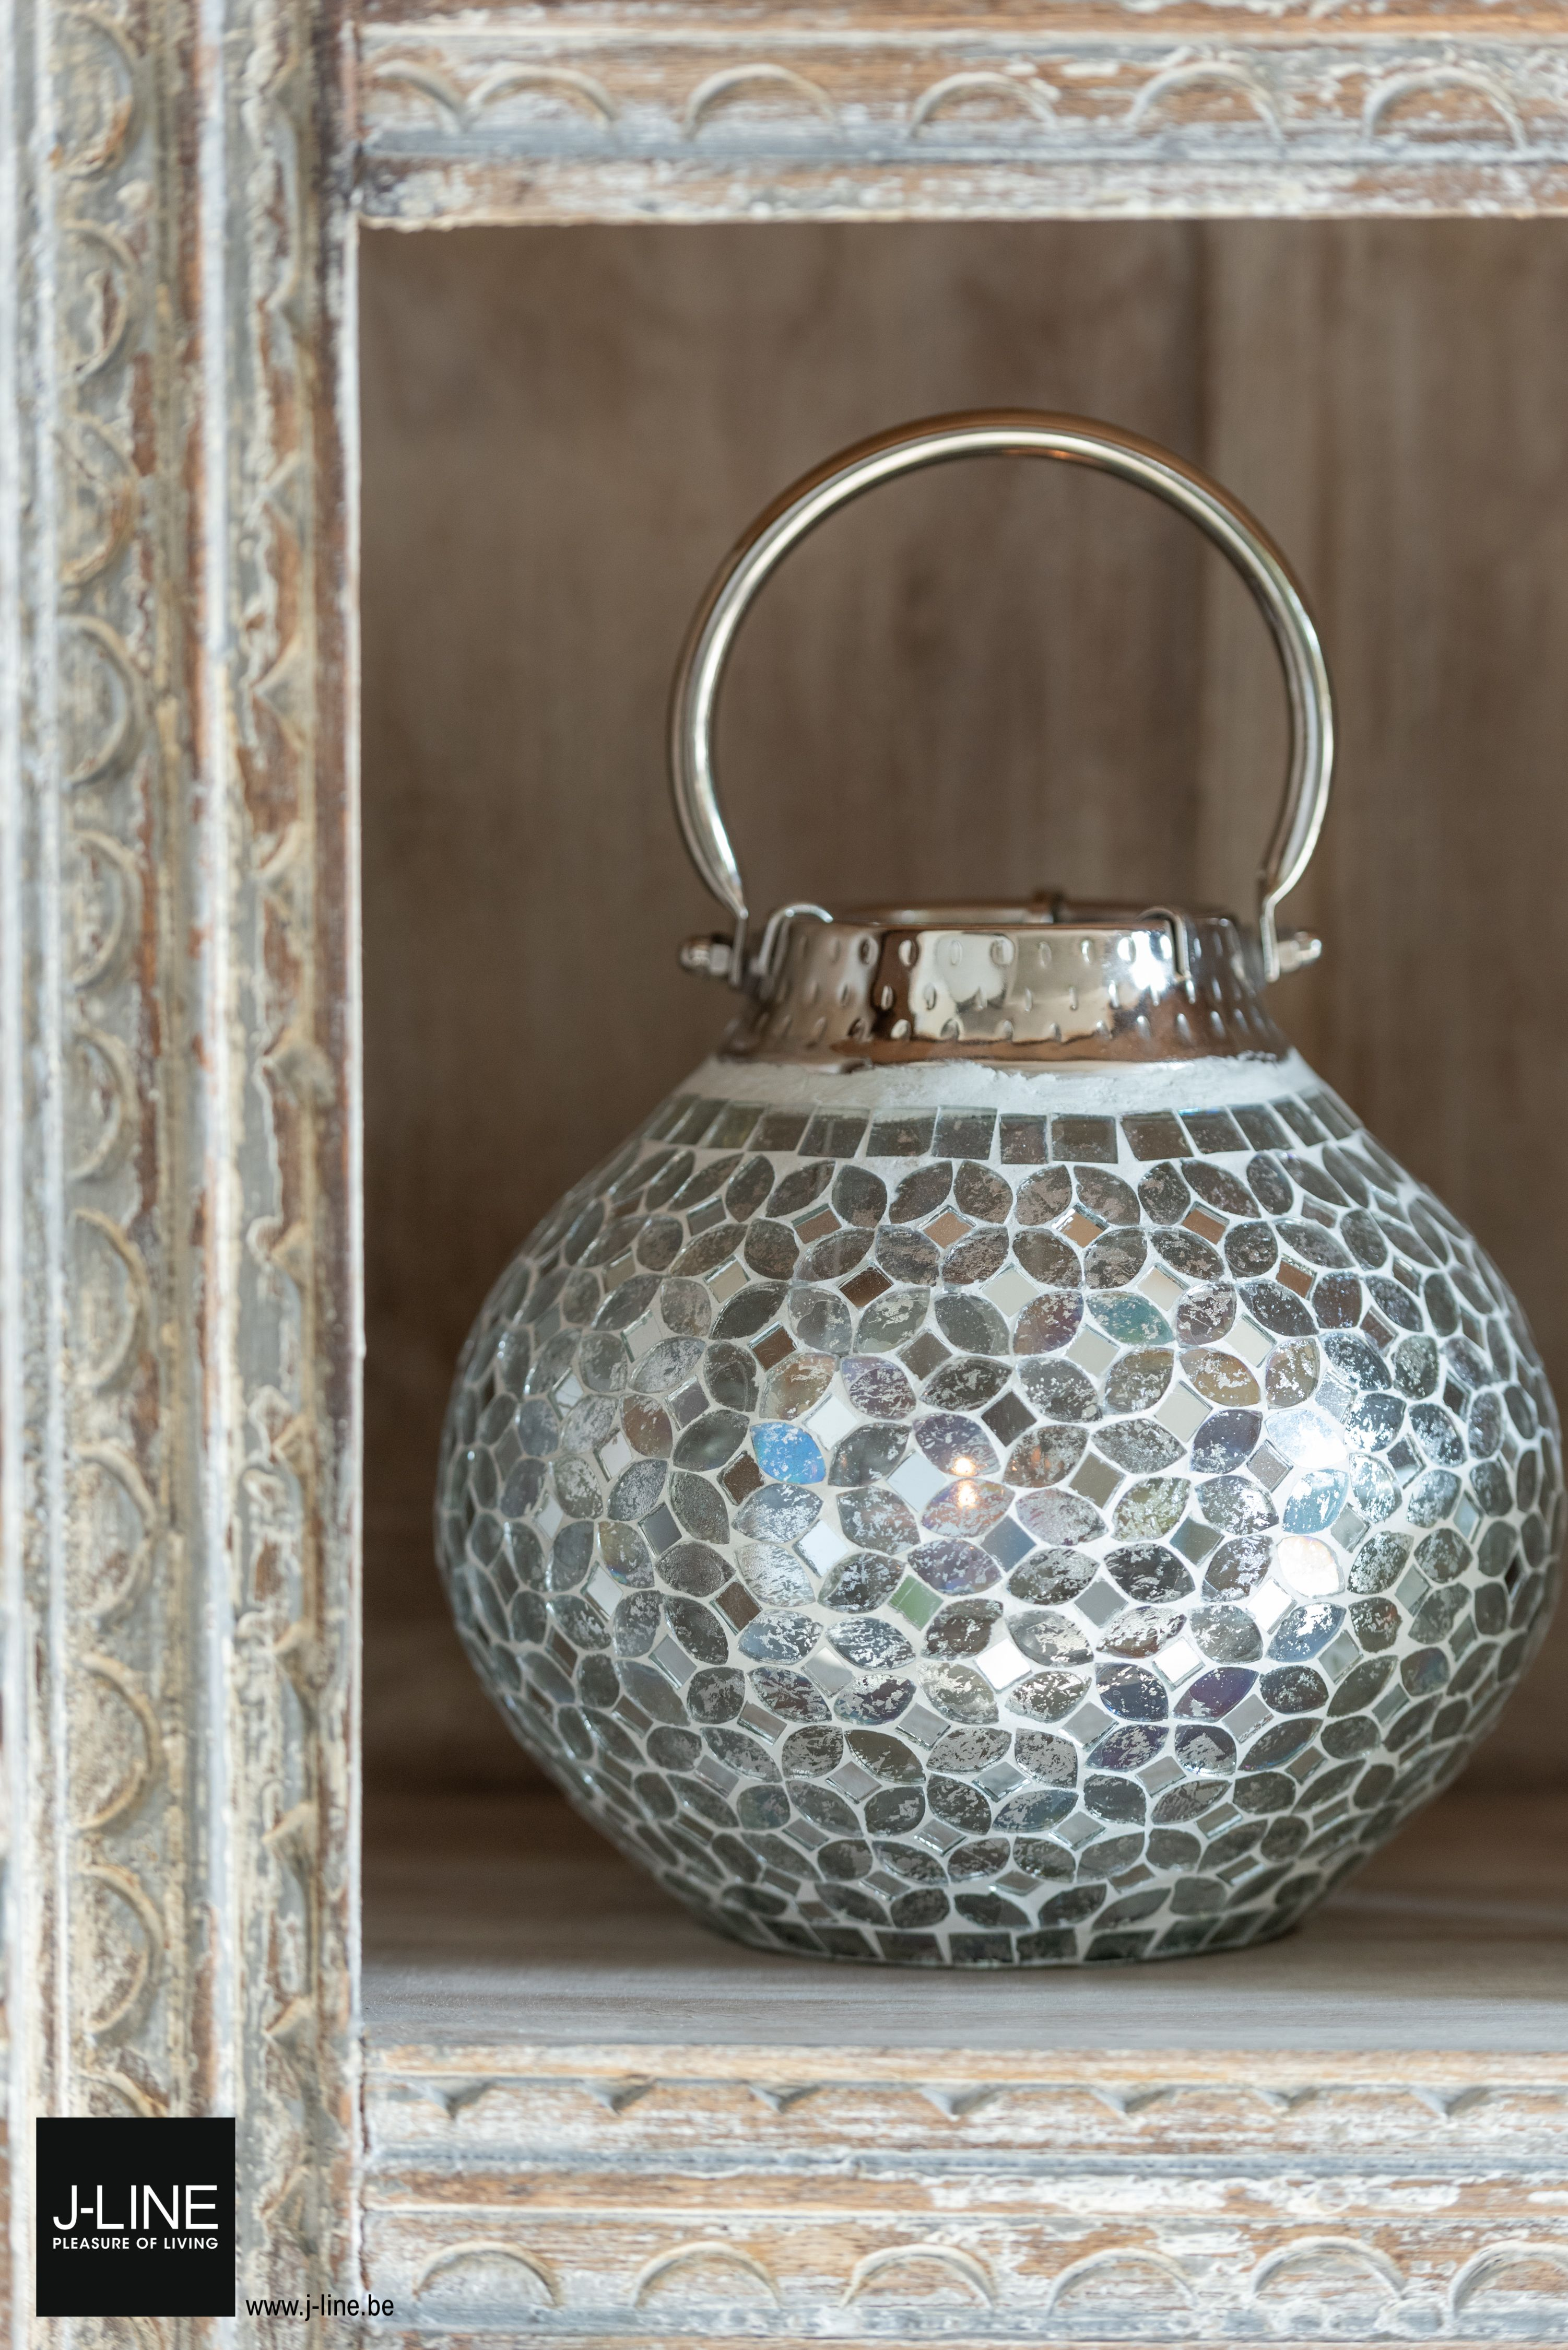 Jline Decoration Riad Romance New Spring Summer Collection 2020 Lantern Mosaic Glass Silver Carvedwood Candle Theelichthouder Opbergdozen Thuis